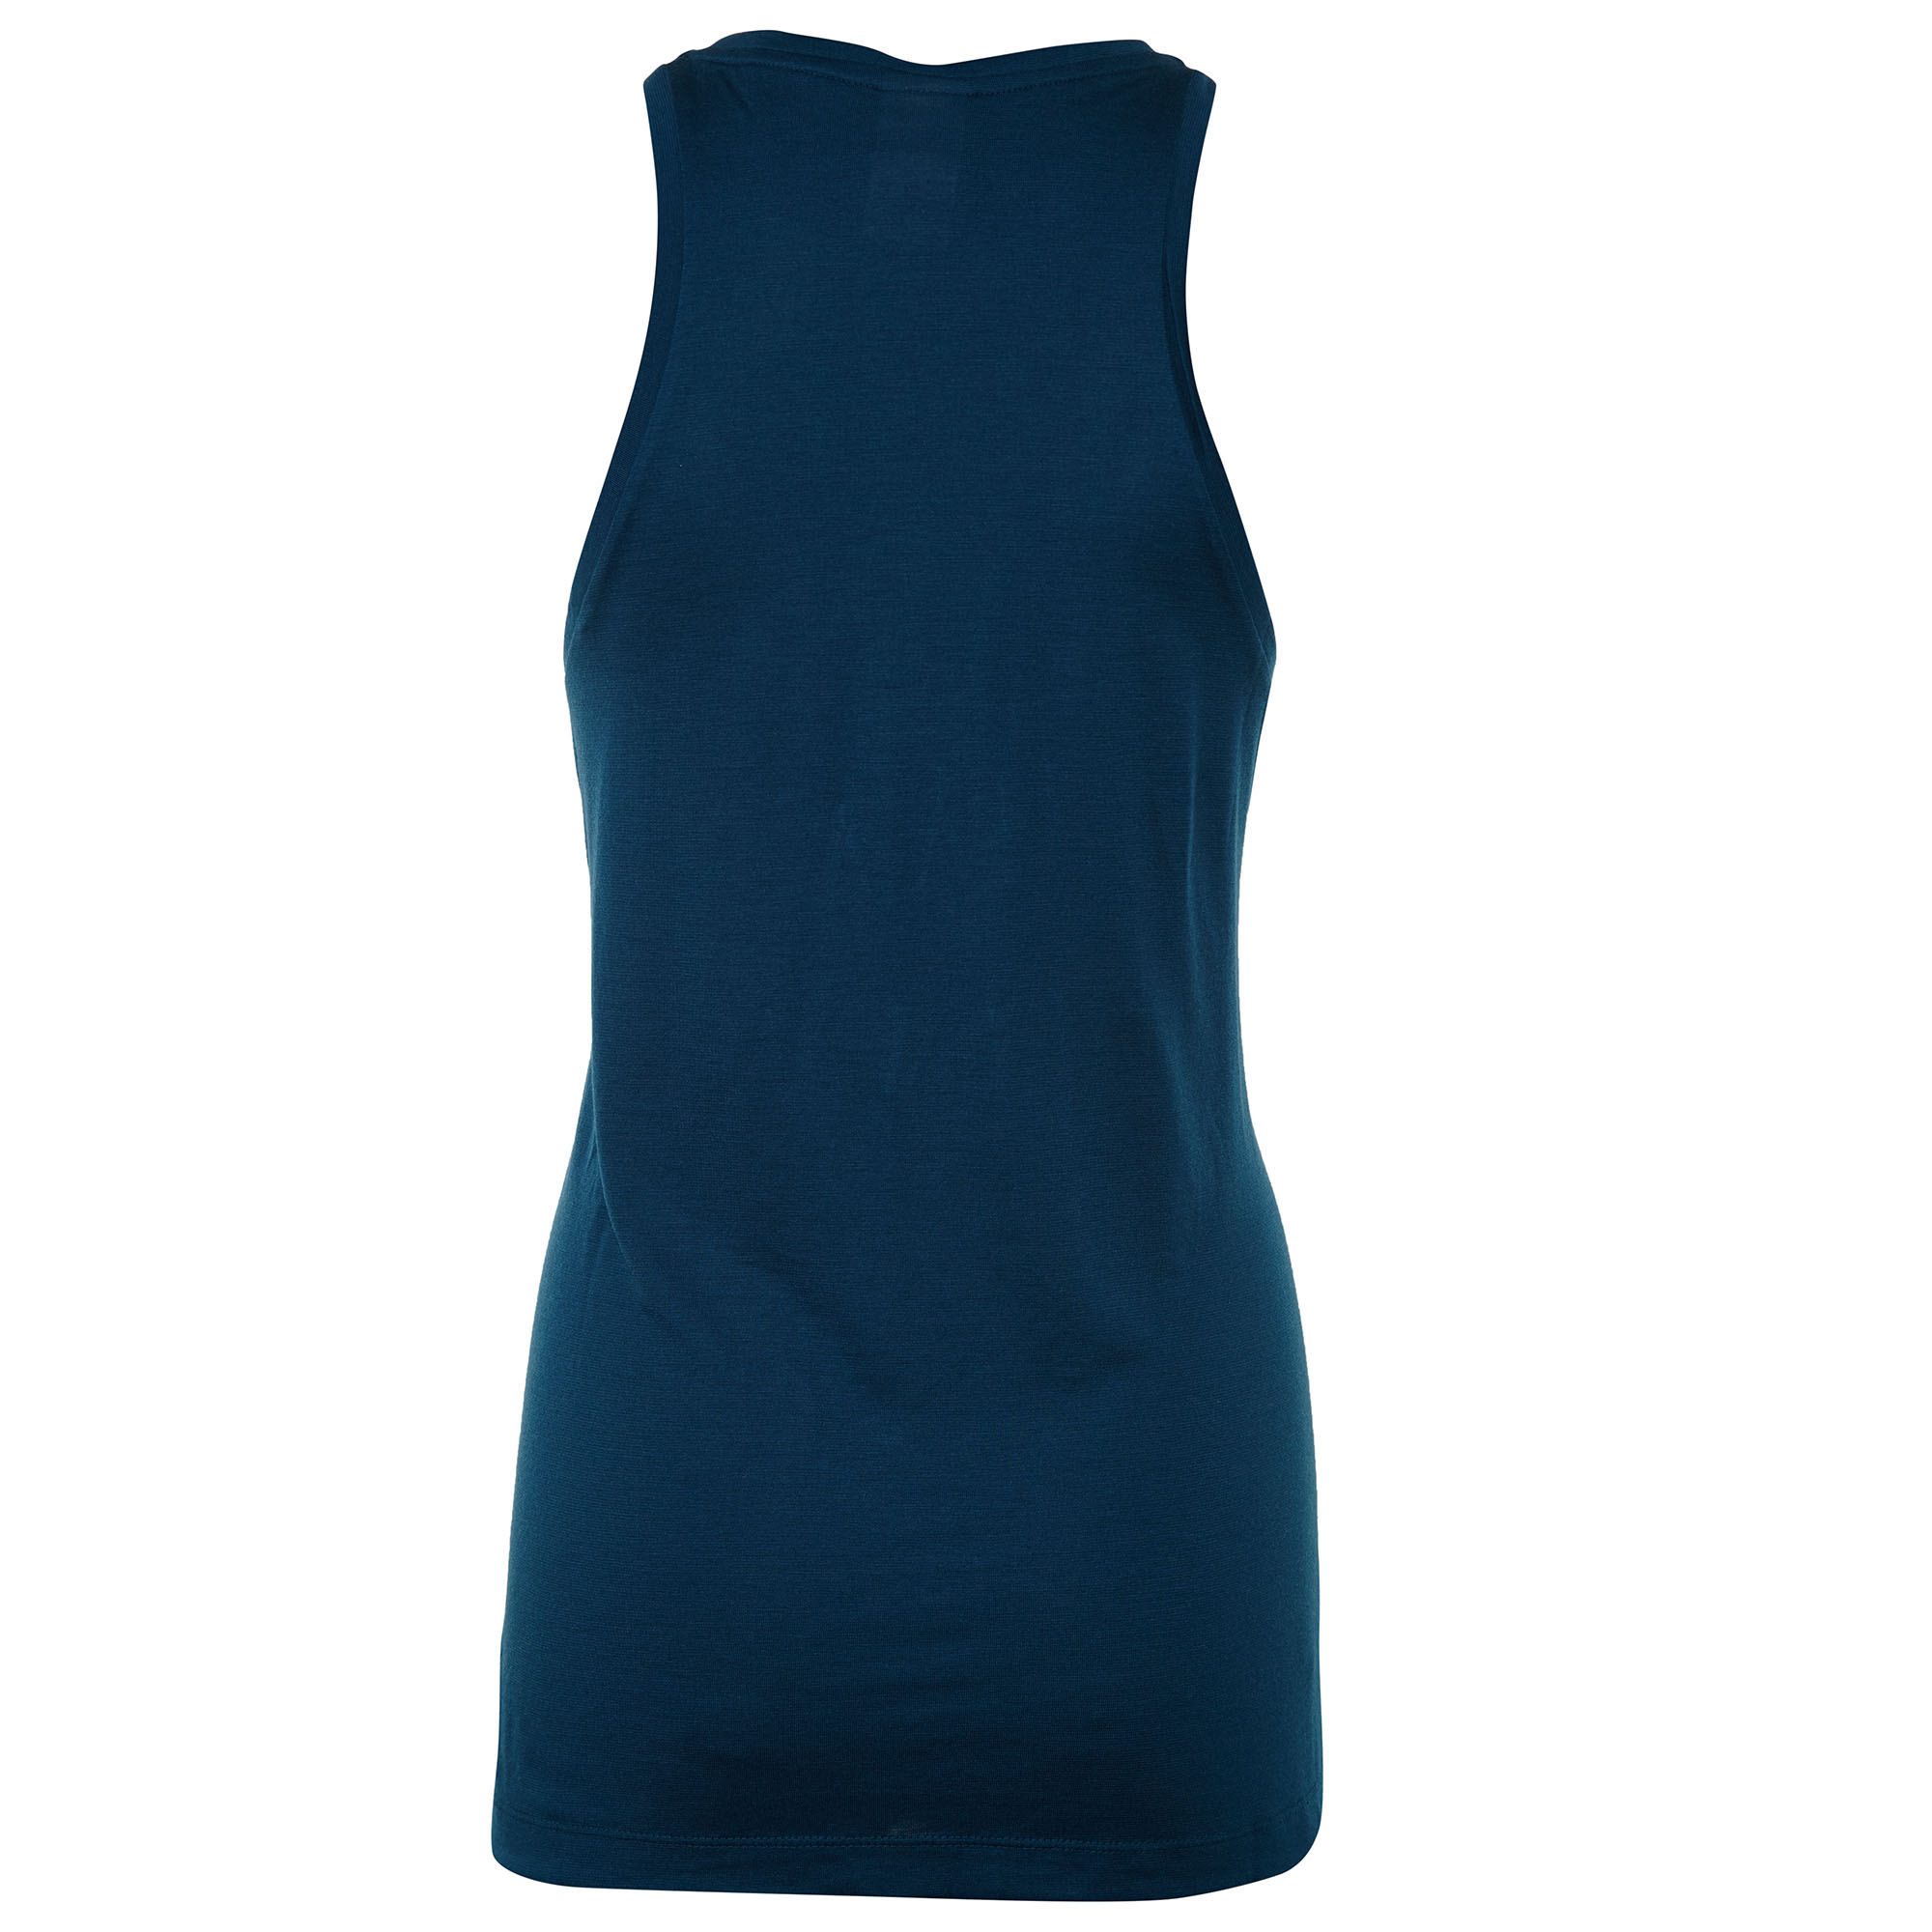 7a2389a9297a49 Details about Nike Womens Sportswear Essential Tank Top 829751-474